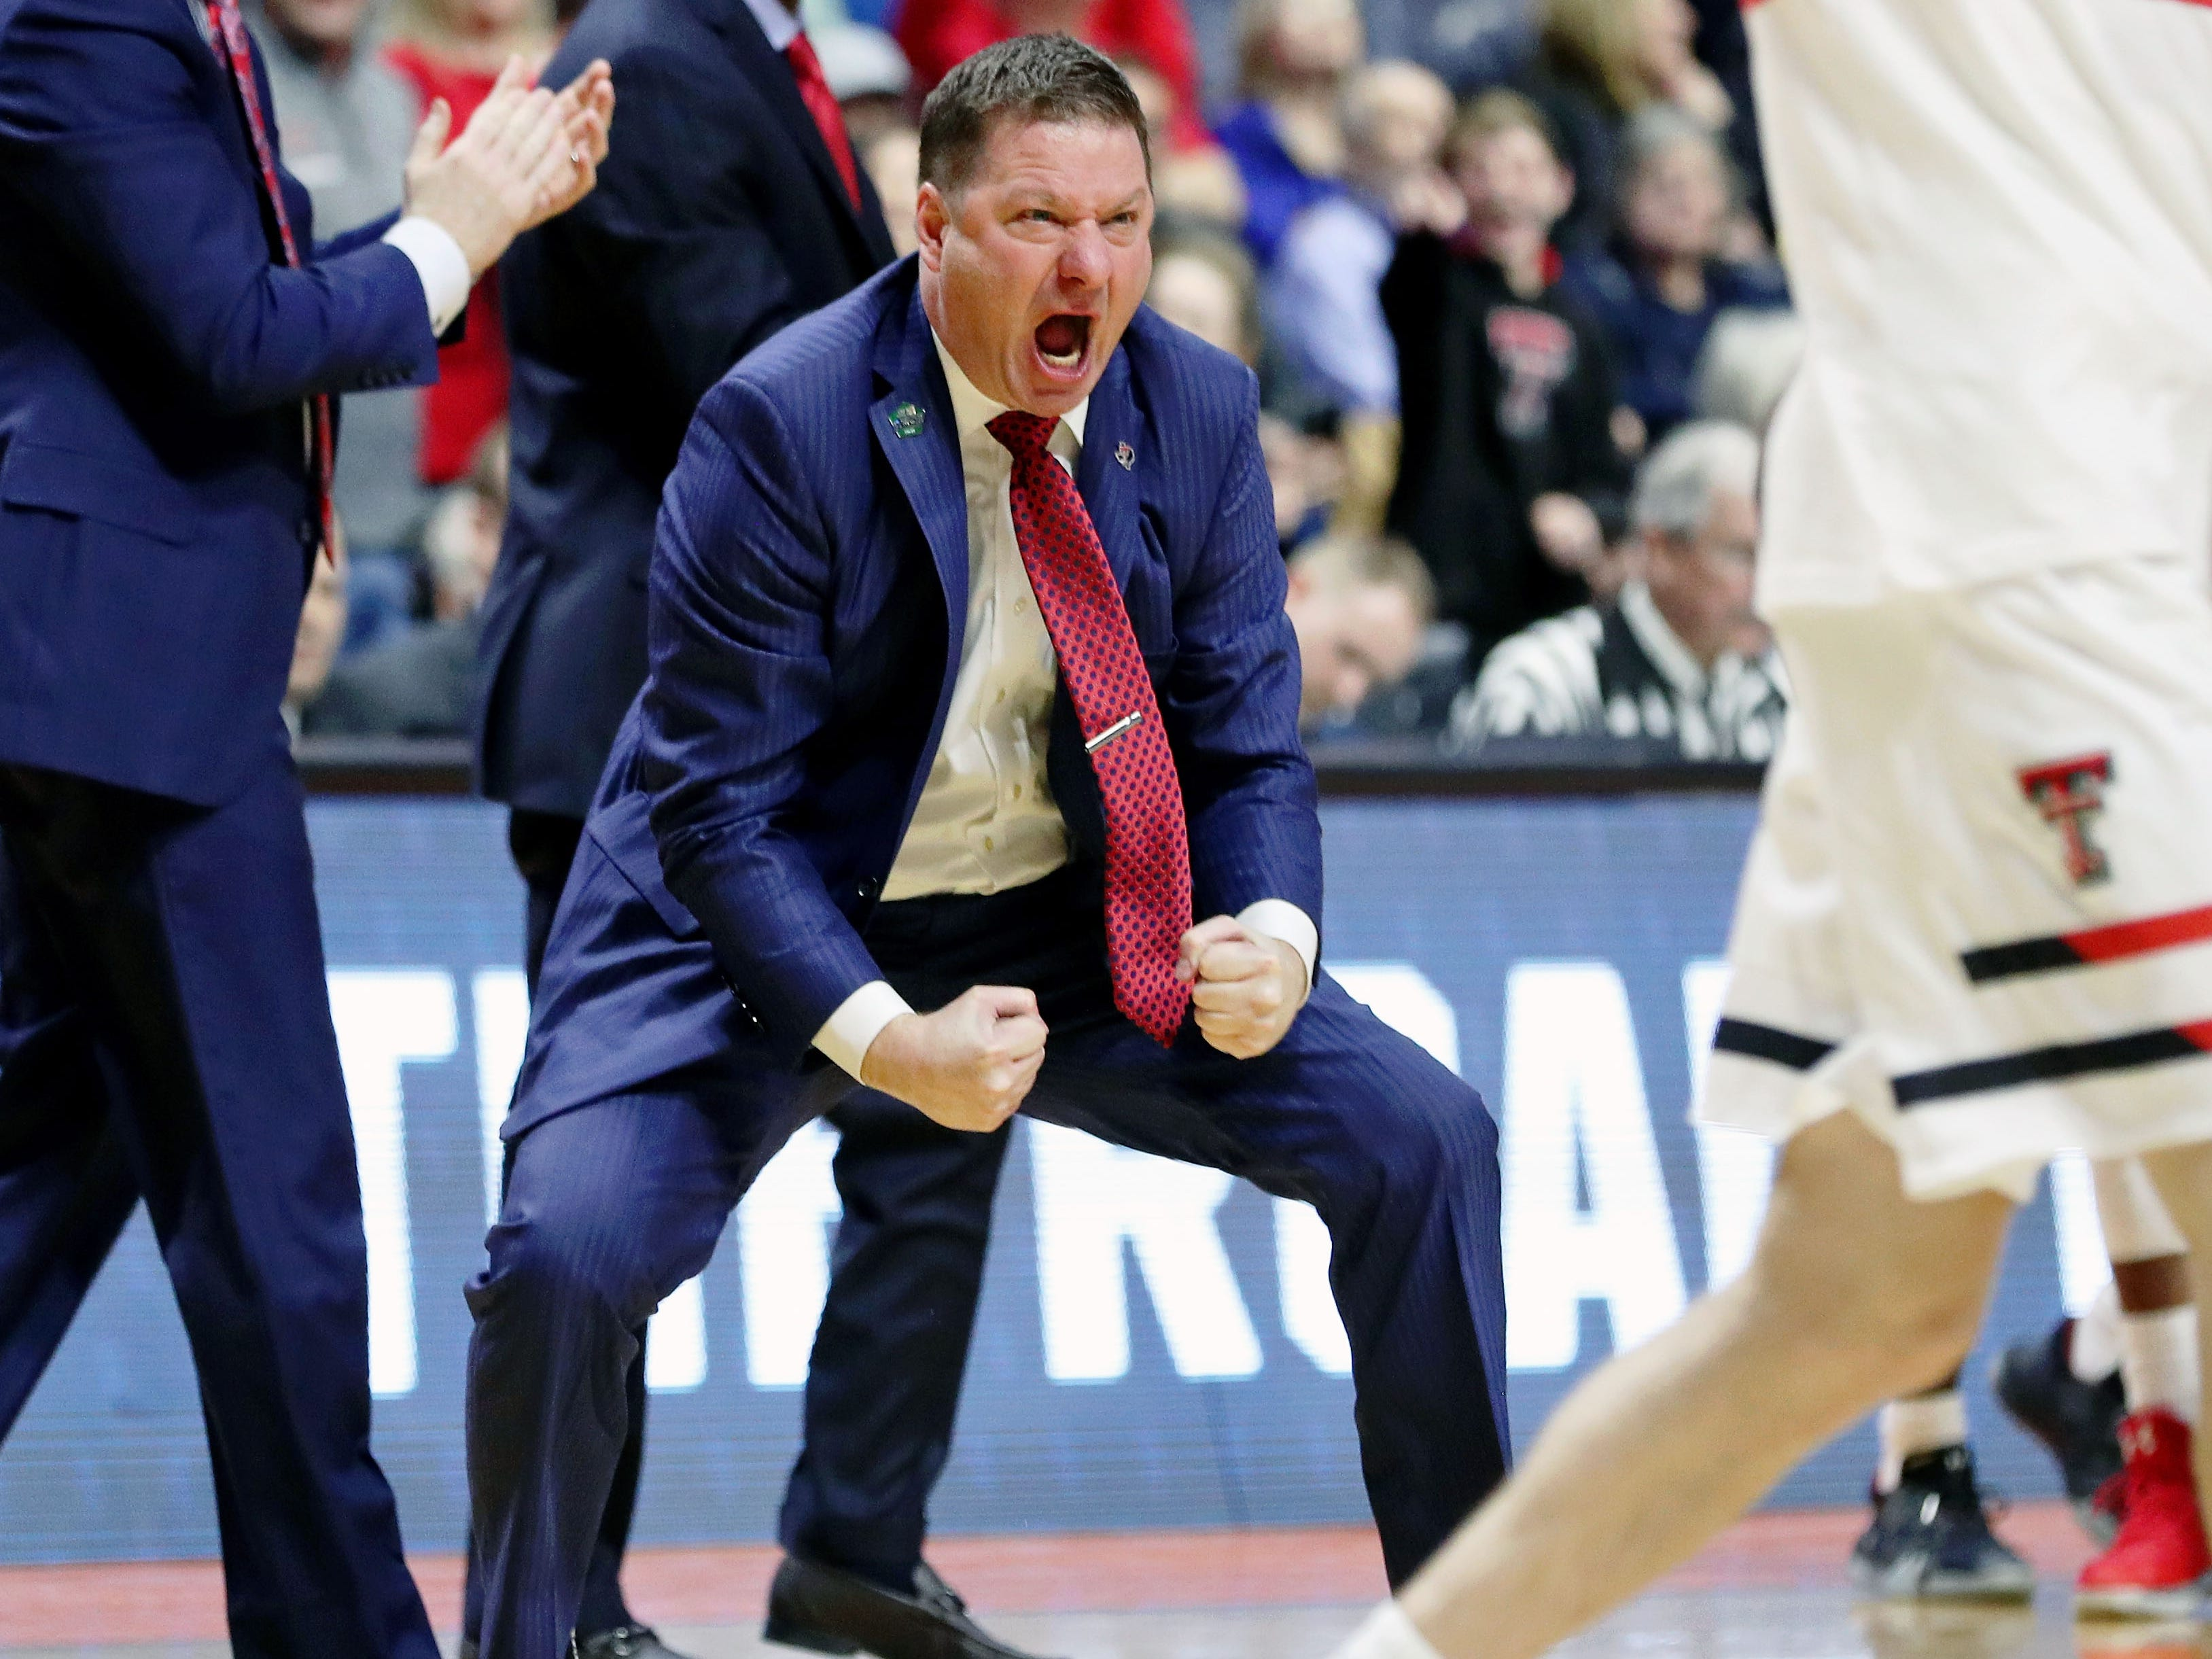 First round: Texas Tech Red Raiders head coach Chris Beard celebrates during his team's win over Northern Kentucky.